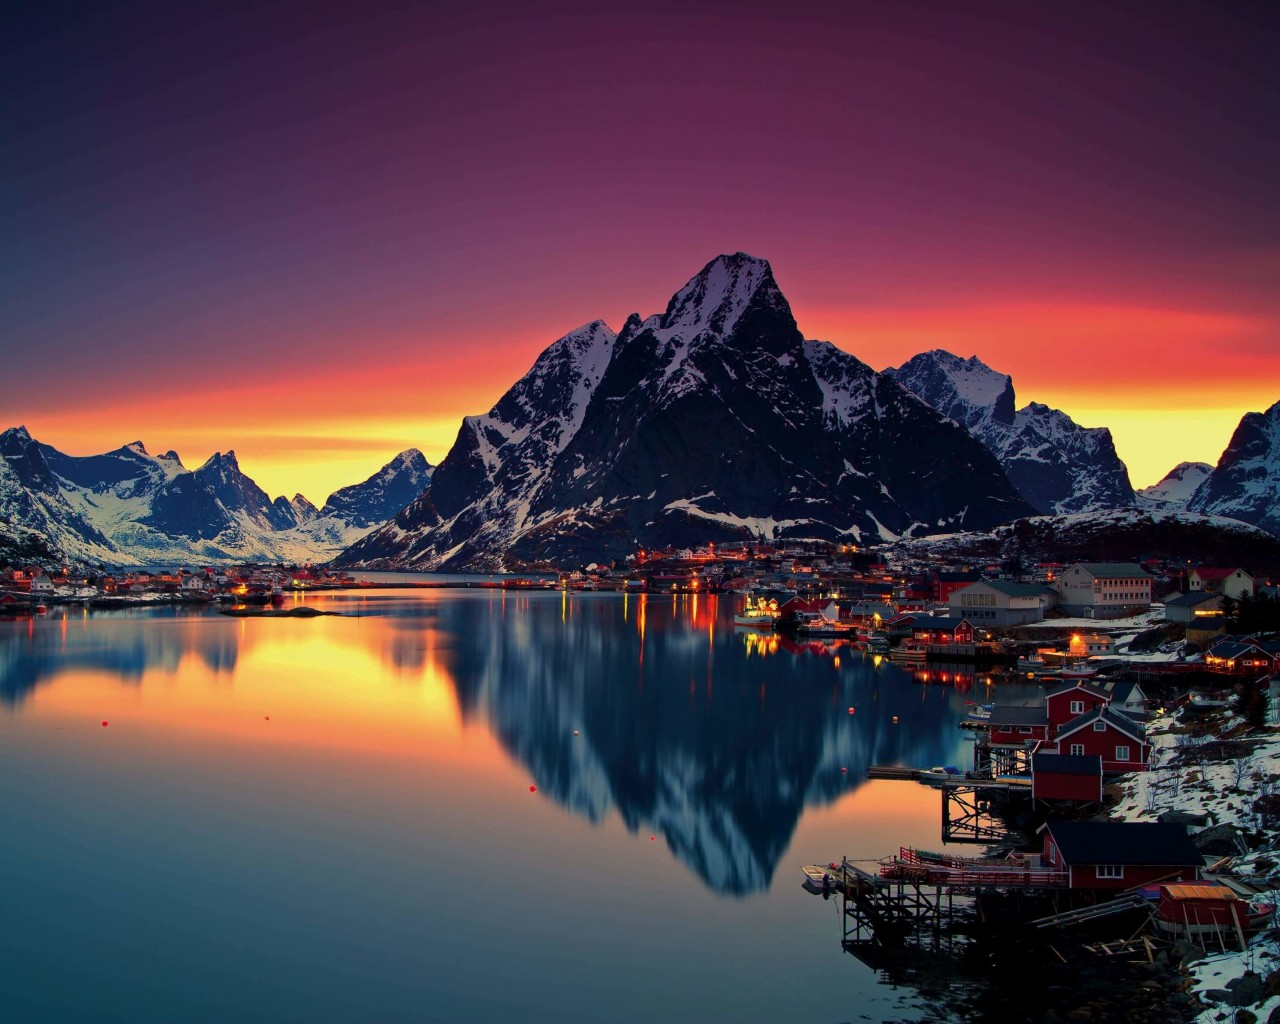 Lofoten Islands, Norway Wallpaper for Desktop 1280x1024